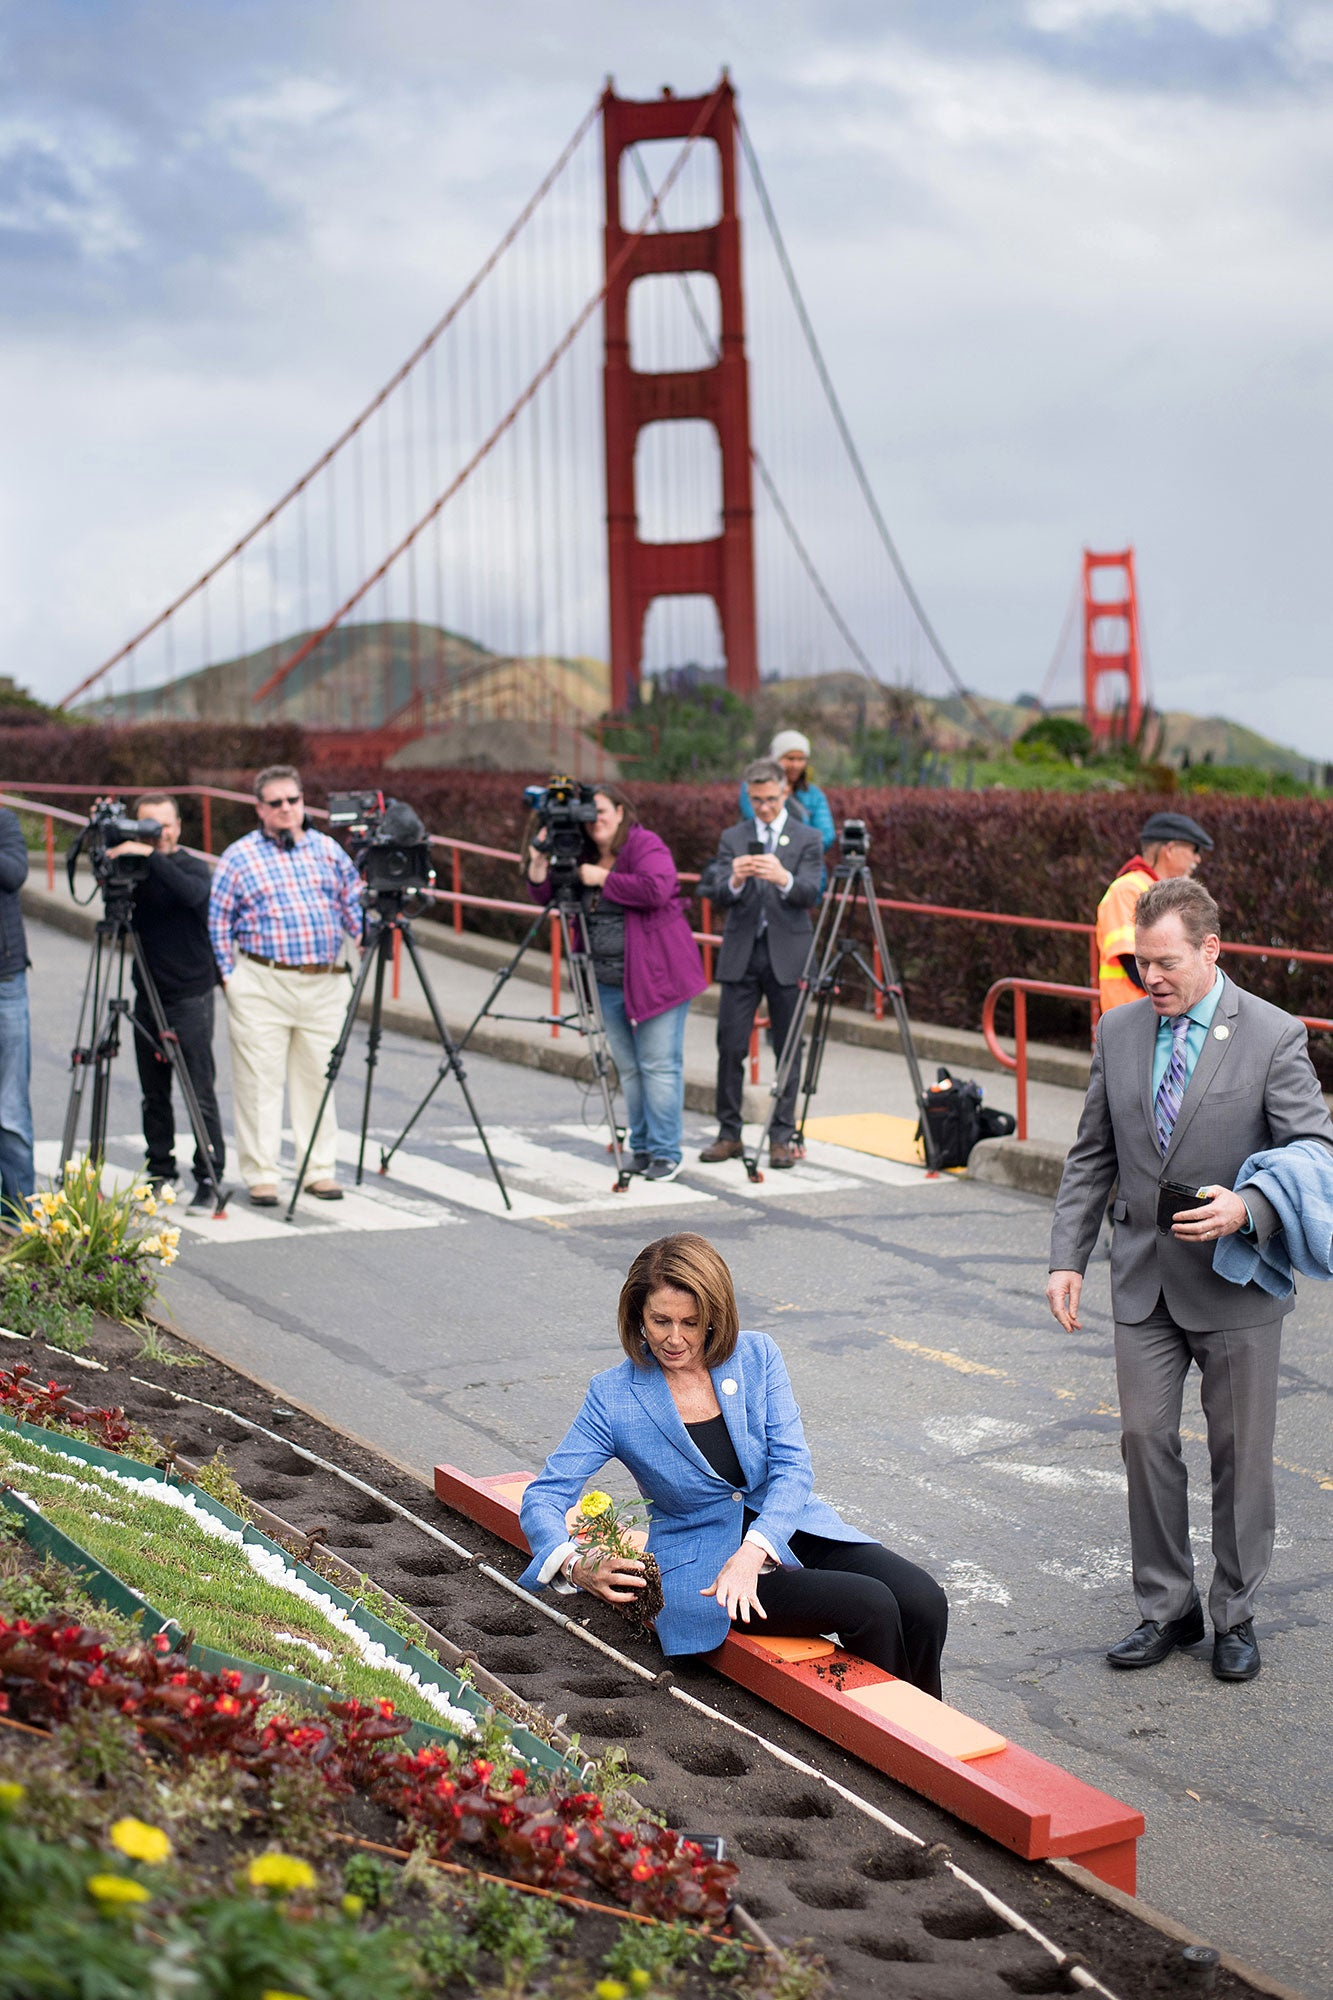 Image of Nancy Pelosi planting a plant in a commemorative garden.